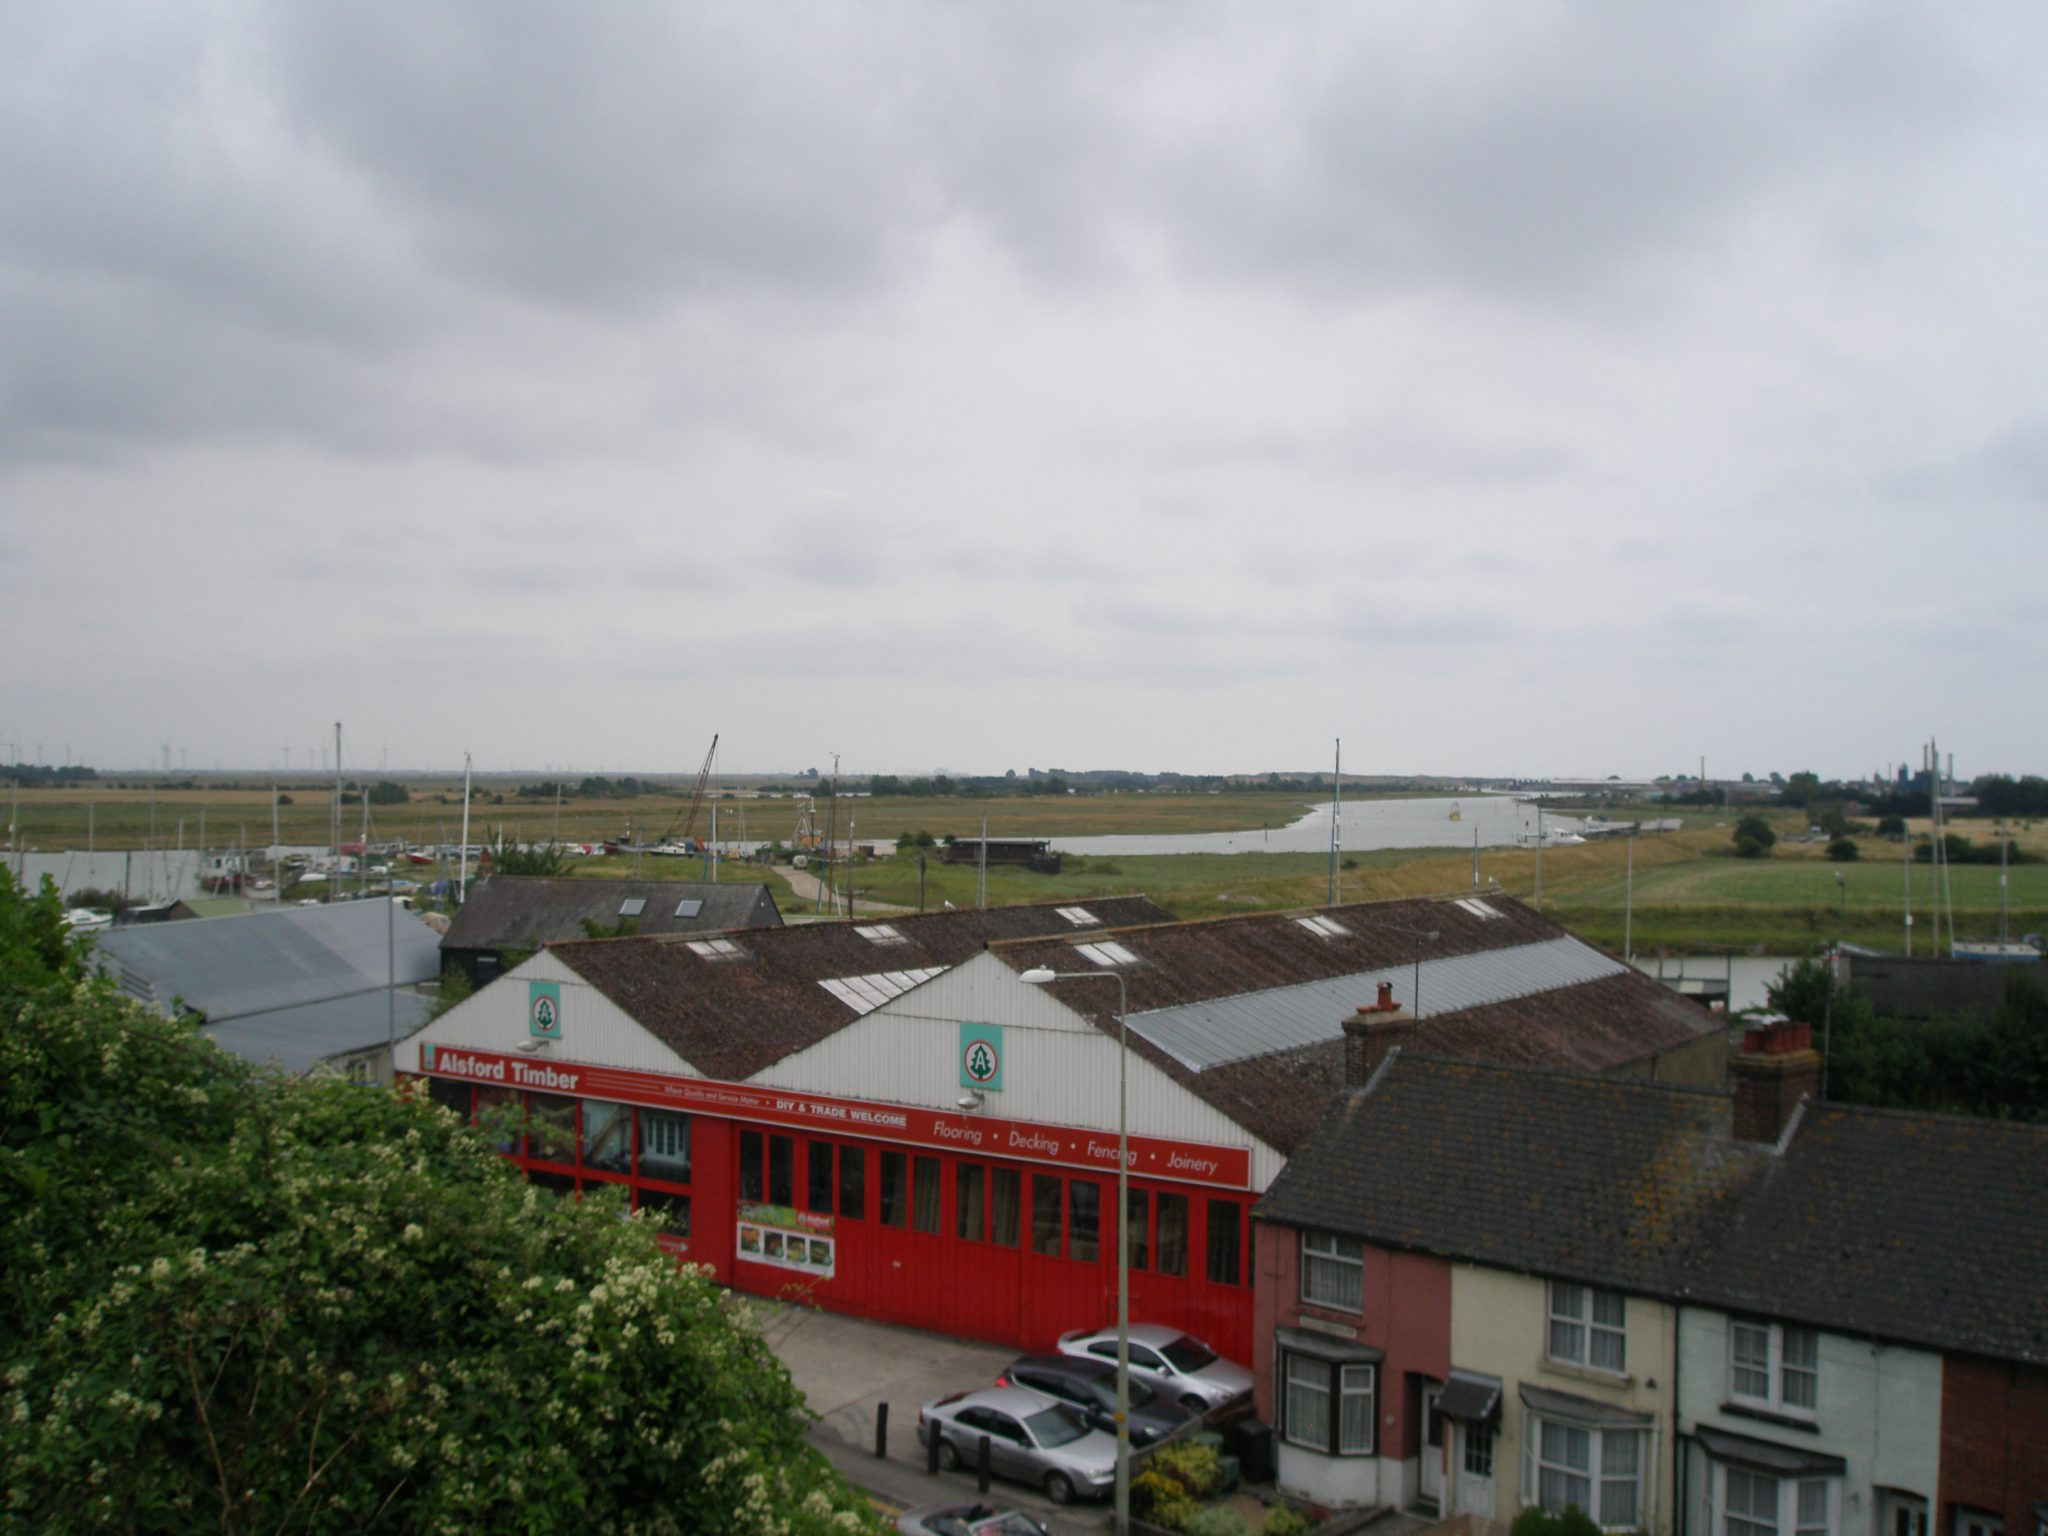 On the far side of The Ypres Tower, we looked out over the River Rother. The view from this point has changed considerably over the years. During the threat of the Spanish Armada in 1588, the high tide would have filled a large estuary, with wide open sea beyond. After the French sacked the town in 1377, sea-facing cannons were mounted on this spot.